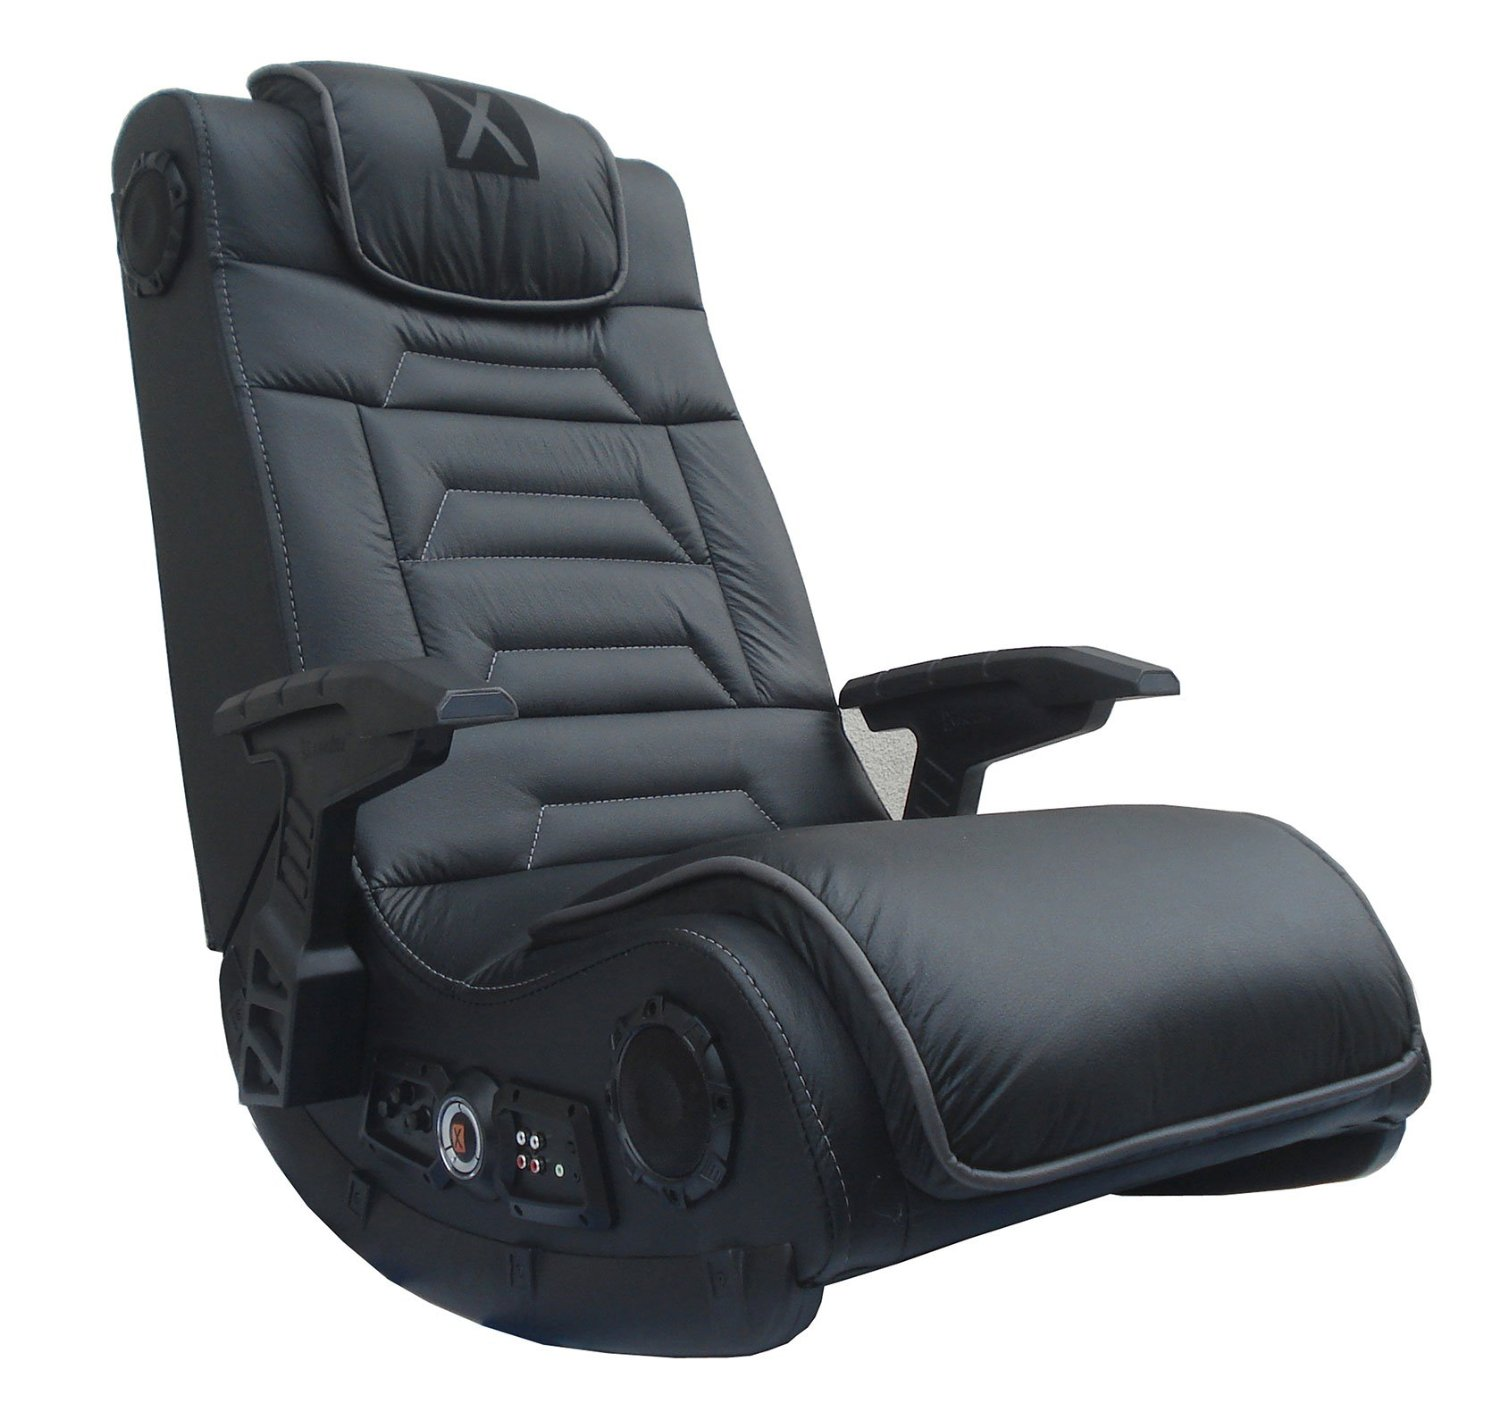 Best Gaming Chair in the Market Top 5 Reviews August 2017